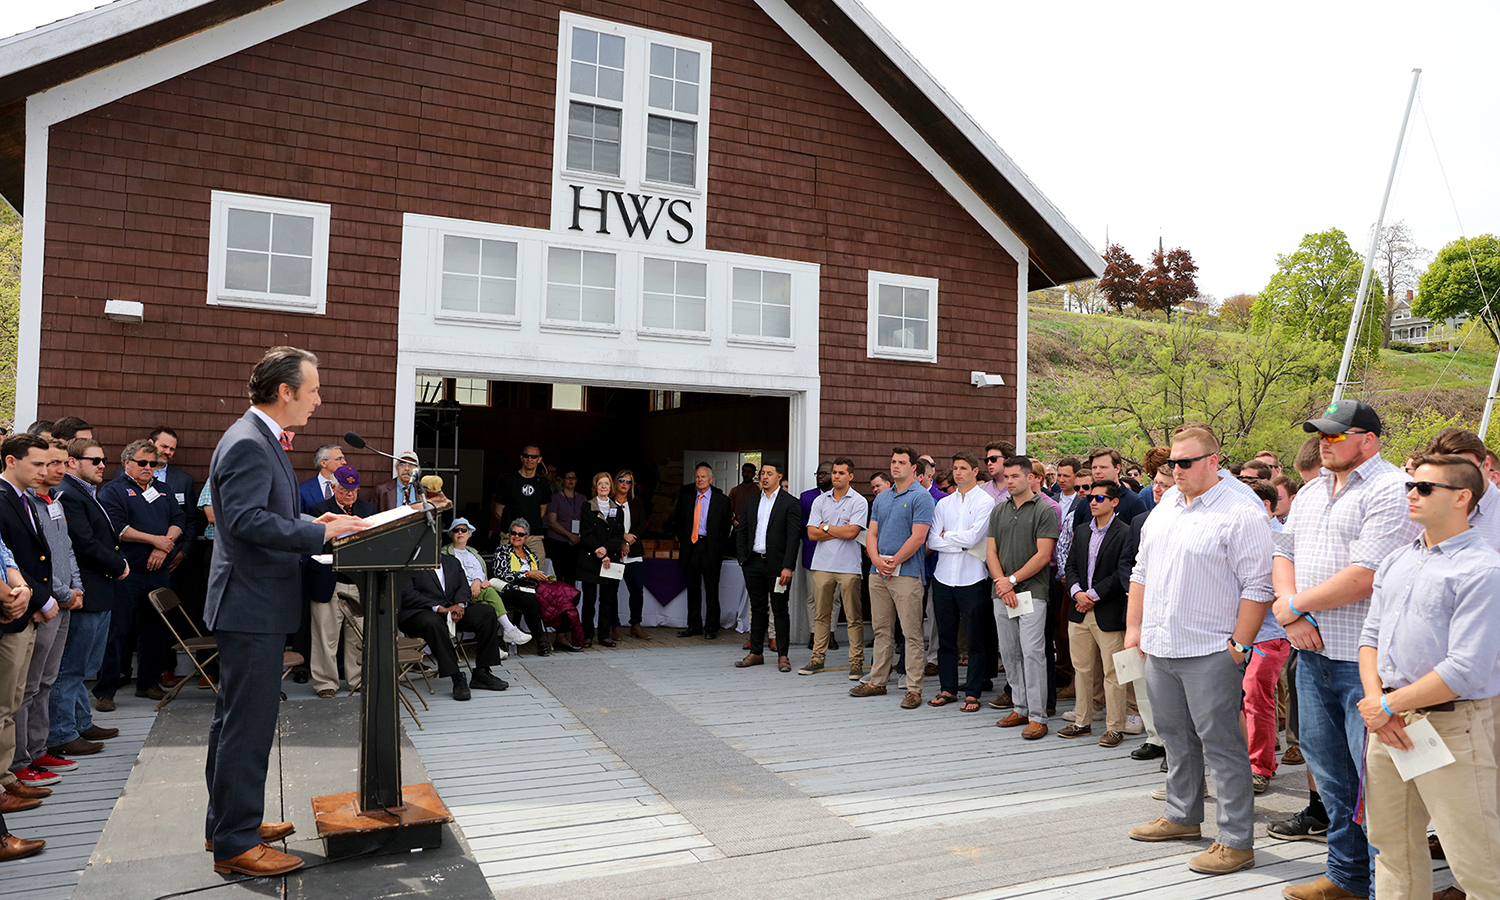 Assistant Vice President for Advancement and Alumni Relations Jared Weeden '91 welcomes the graduating class to the Hobart Launch. The members of the Hobart Class of 2017 were each presented with replicas of the paddle used by the Seneca warrior Agayentah.